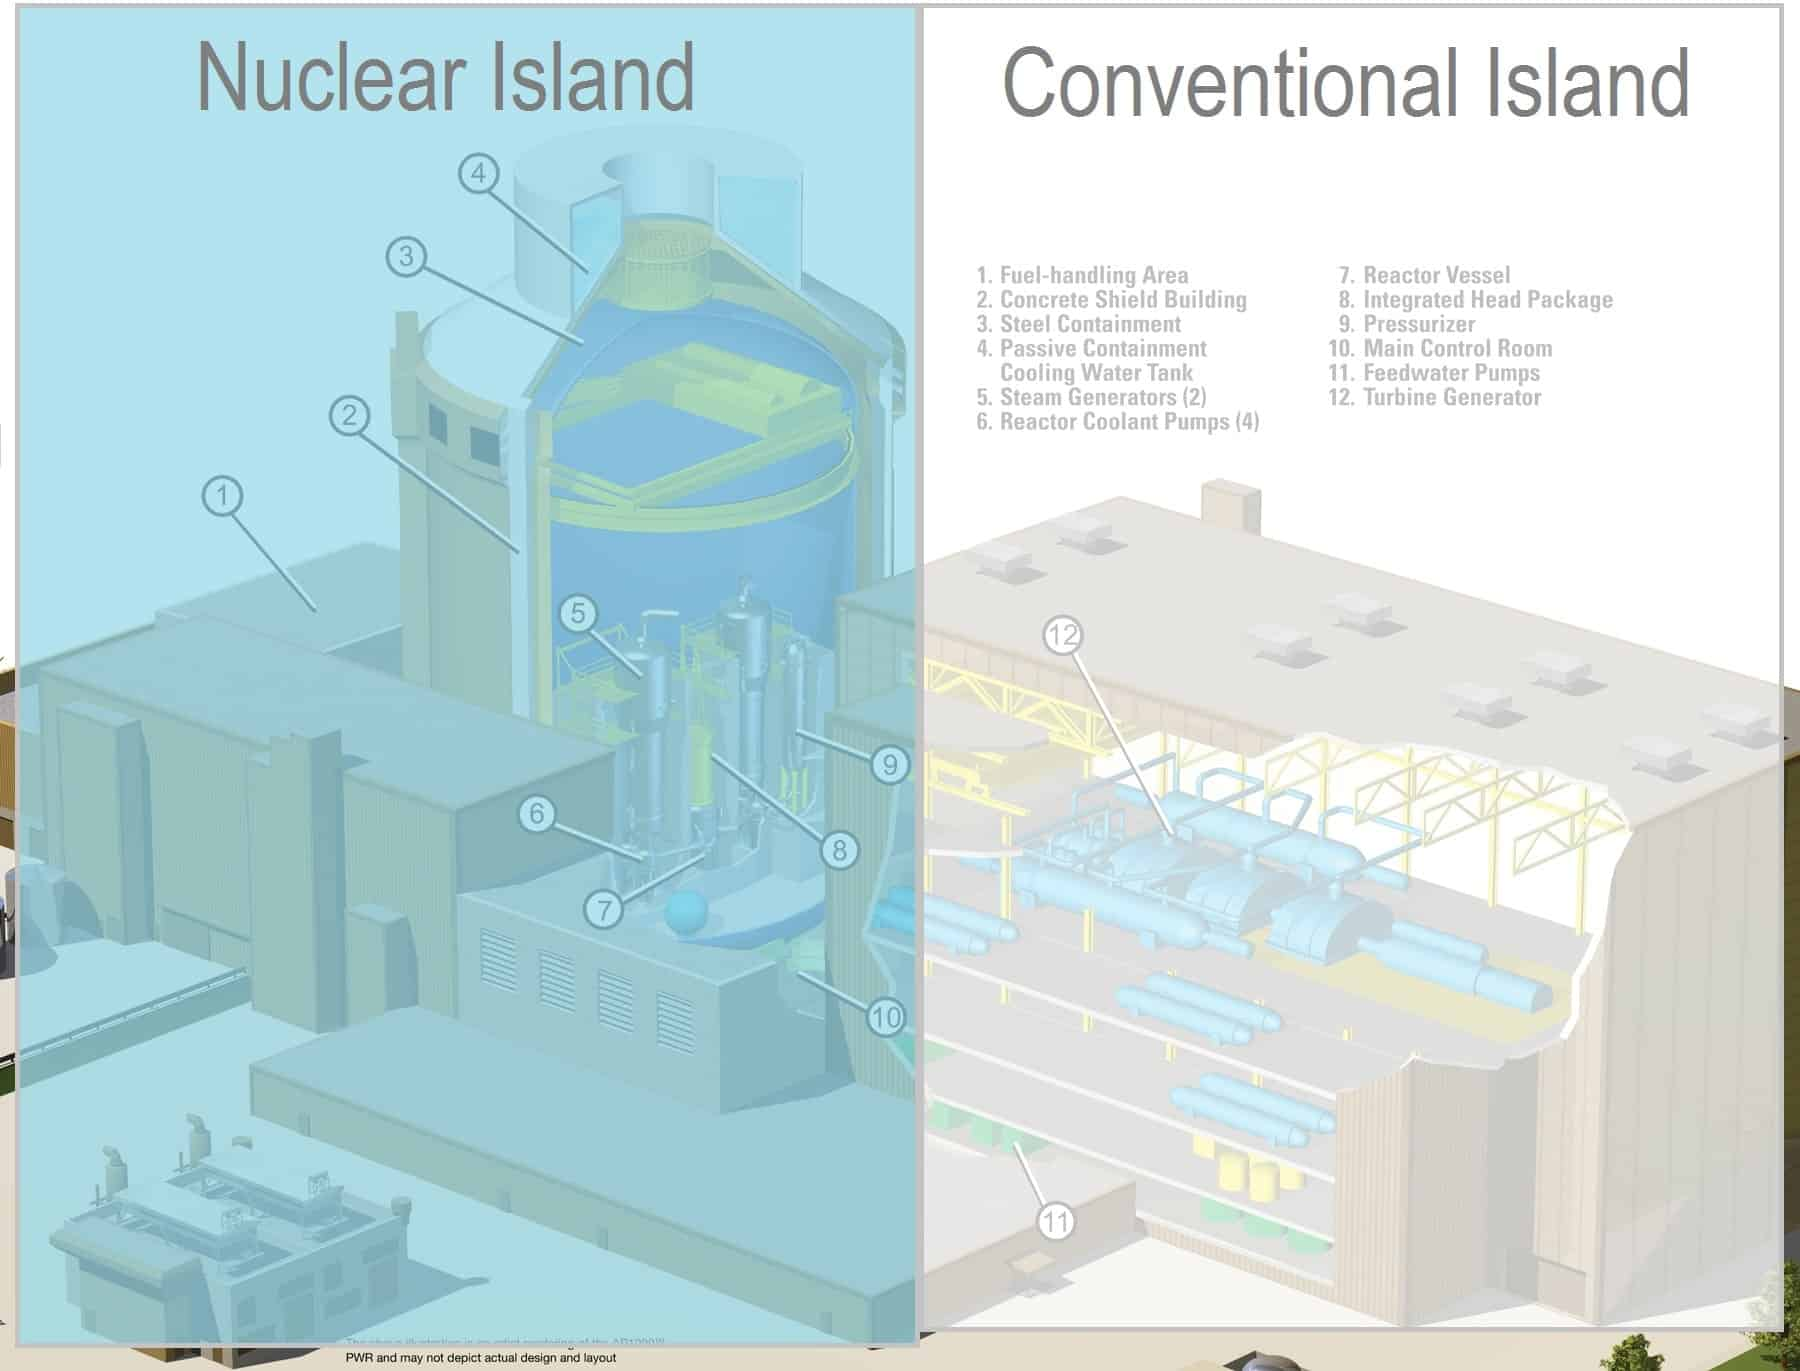 Nuclear Island Power Plant Layout And Operation The Of Plants Comprises Two Major Parts Conventional Turbine